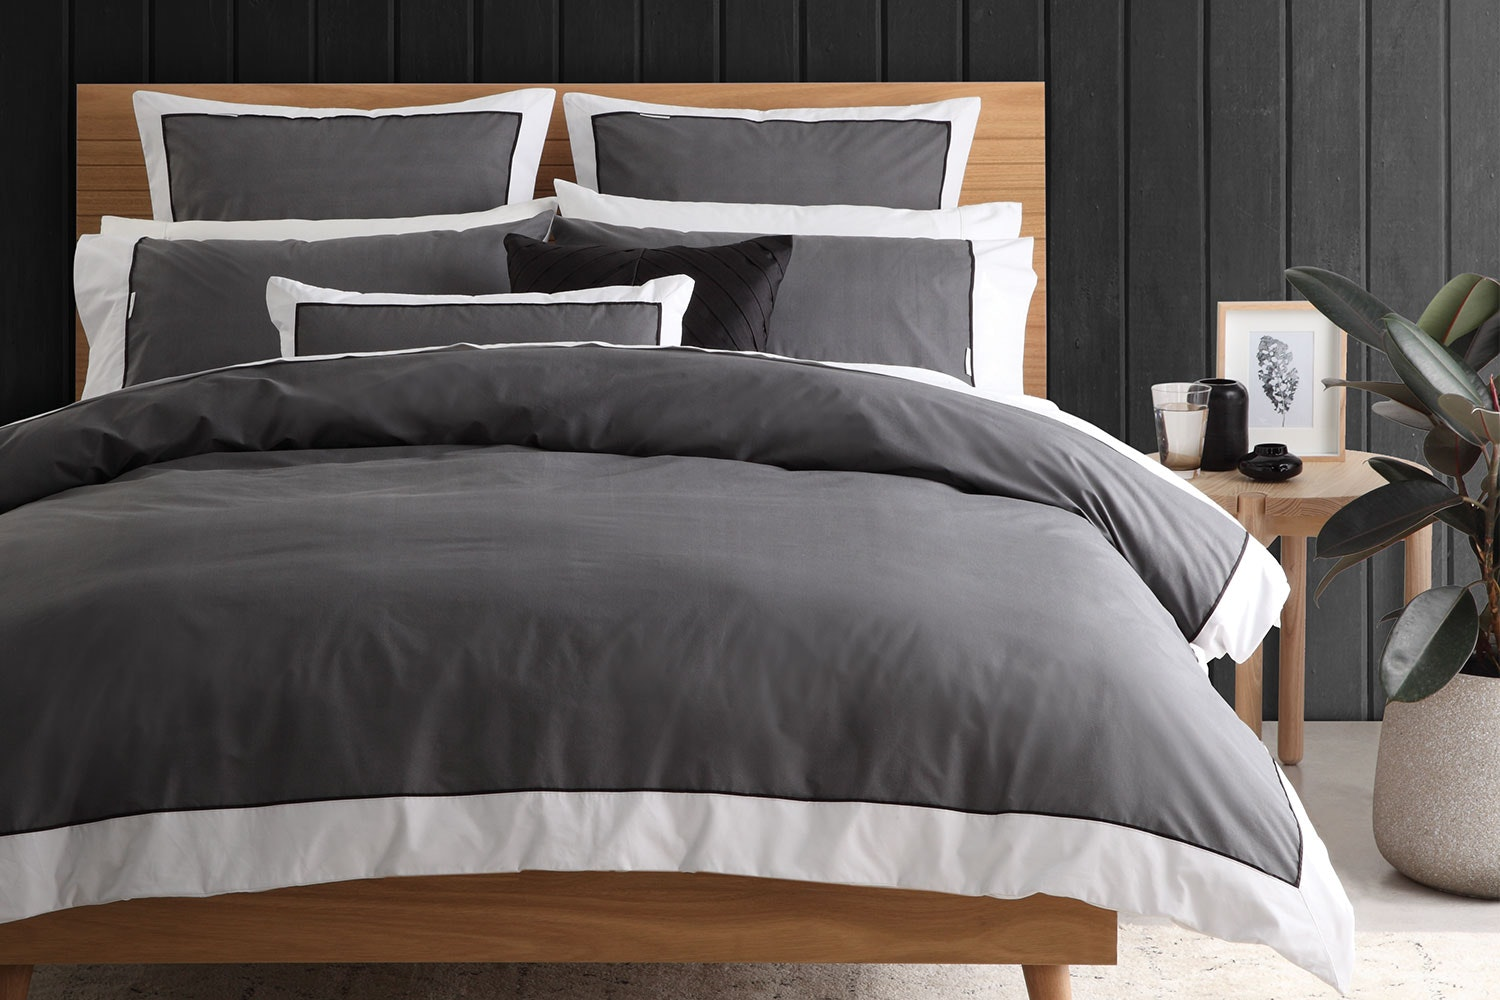 Essex Charcoal Duvet Cover Set by Logan and Mason